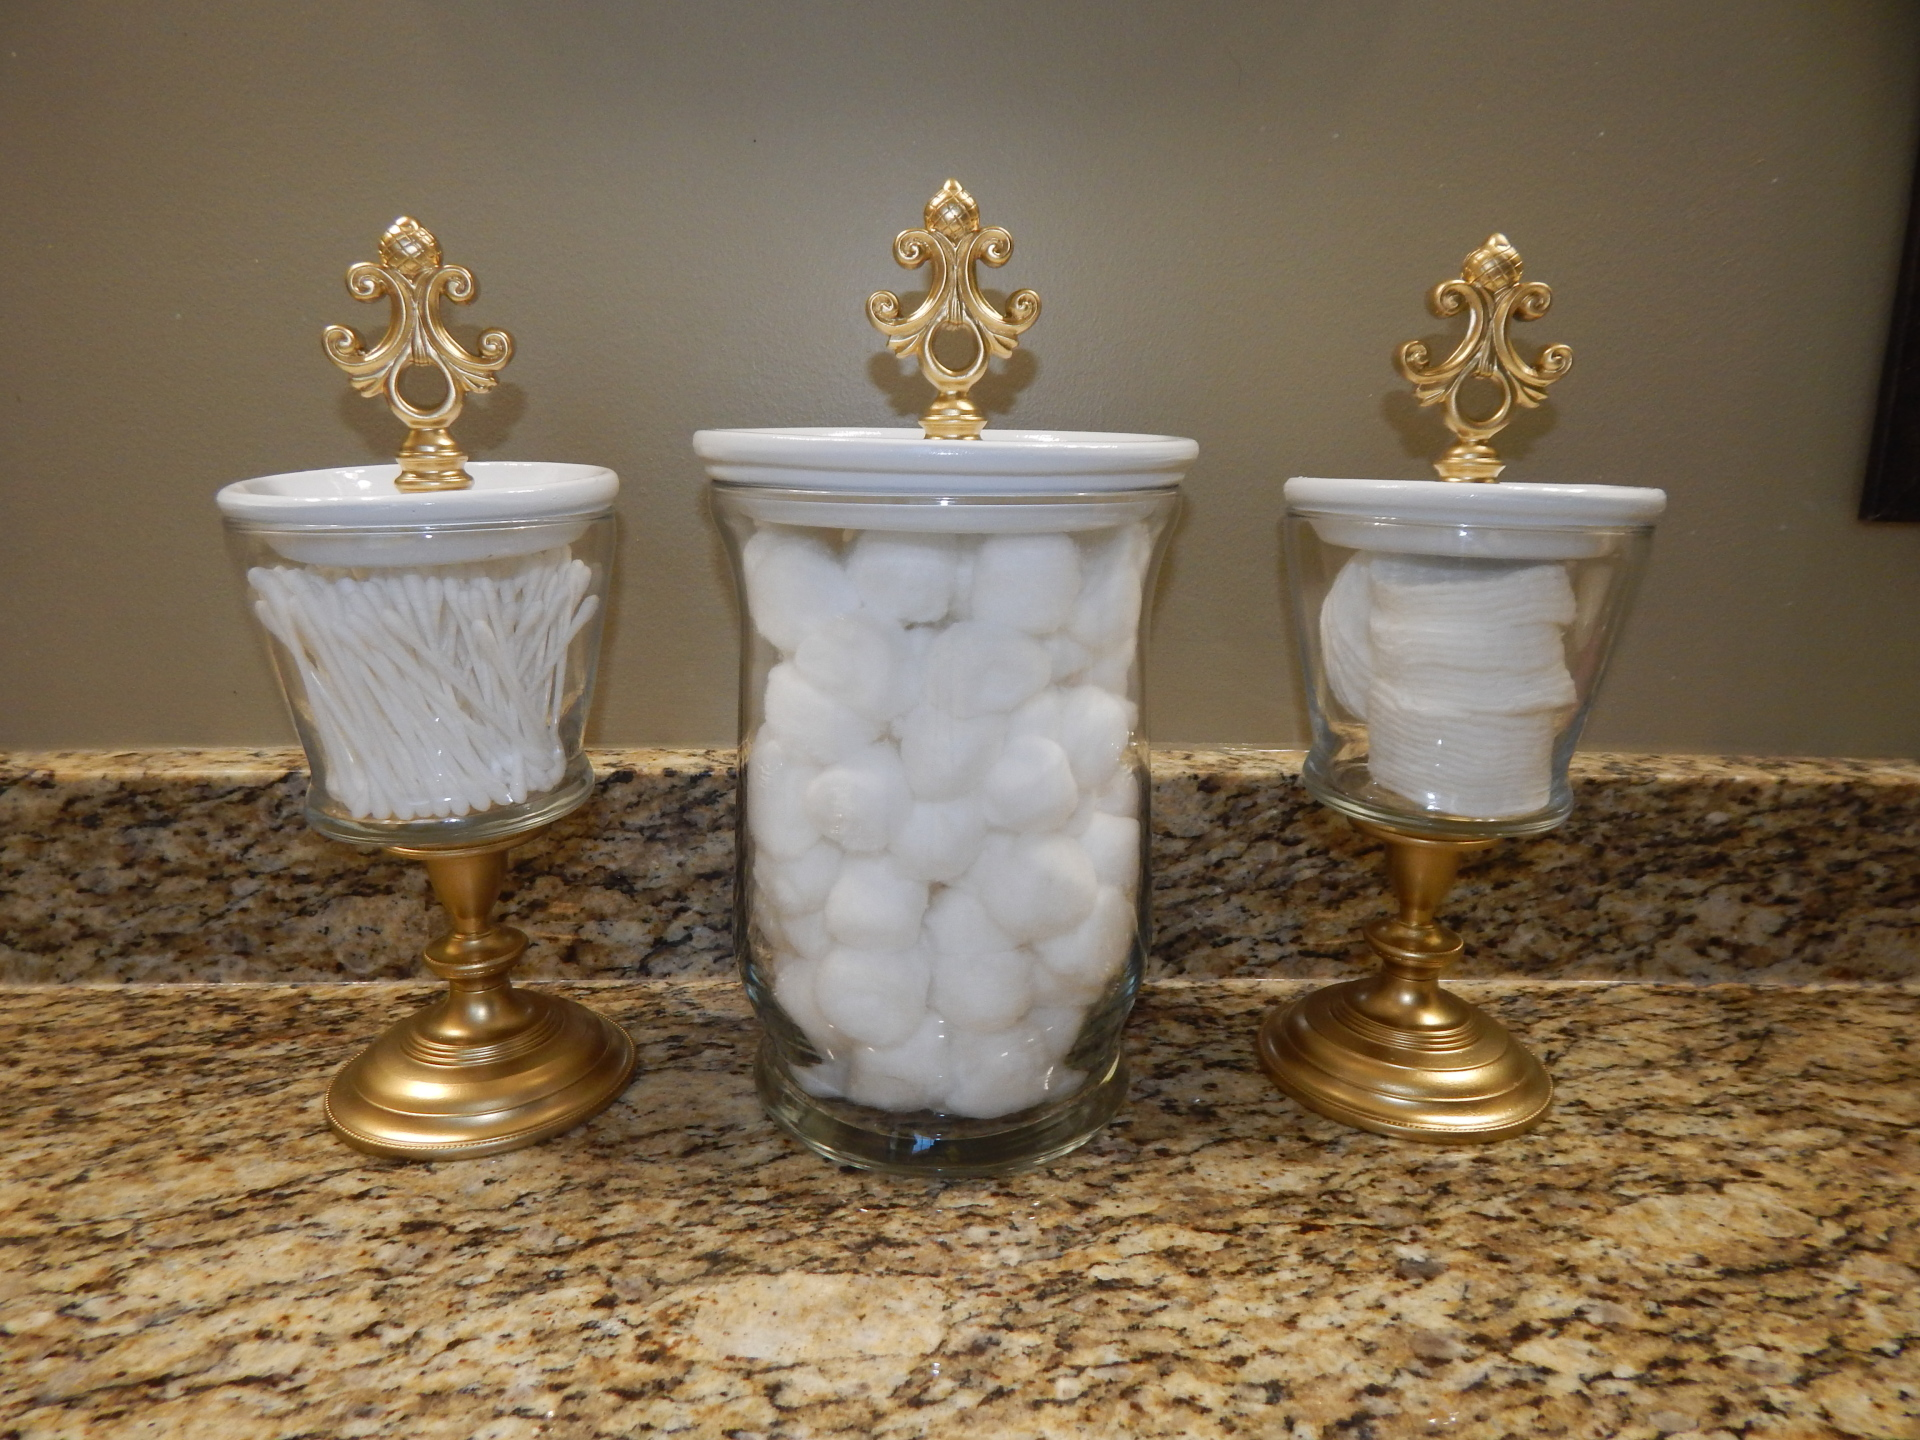 Make these bathroom canisters and jewelry holders!